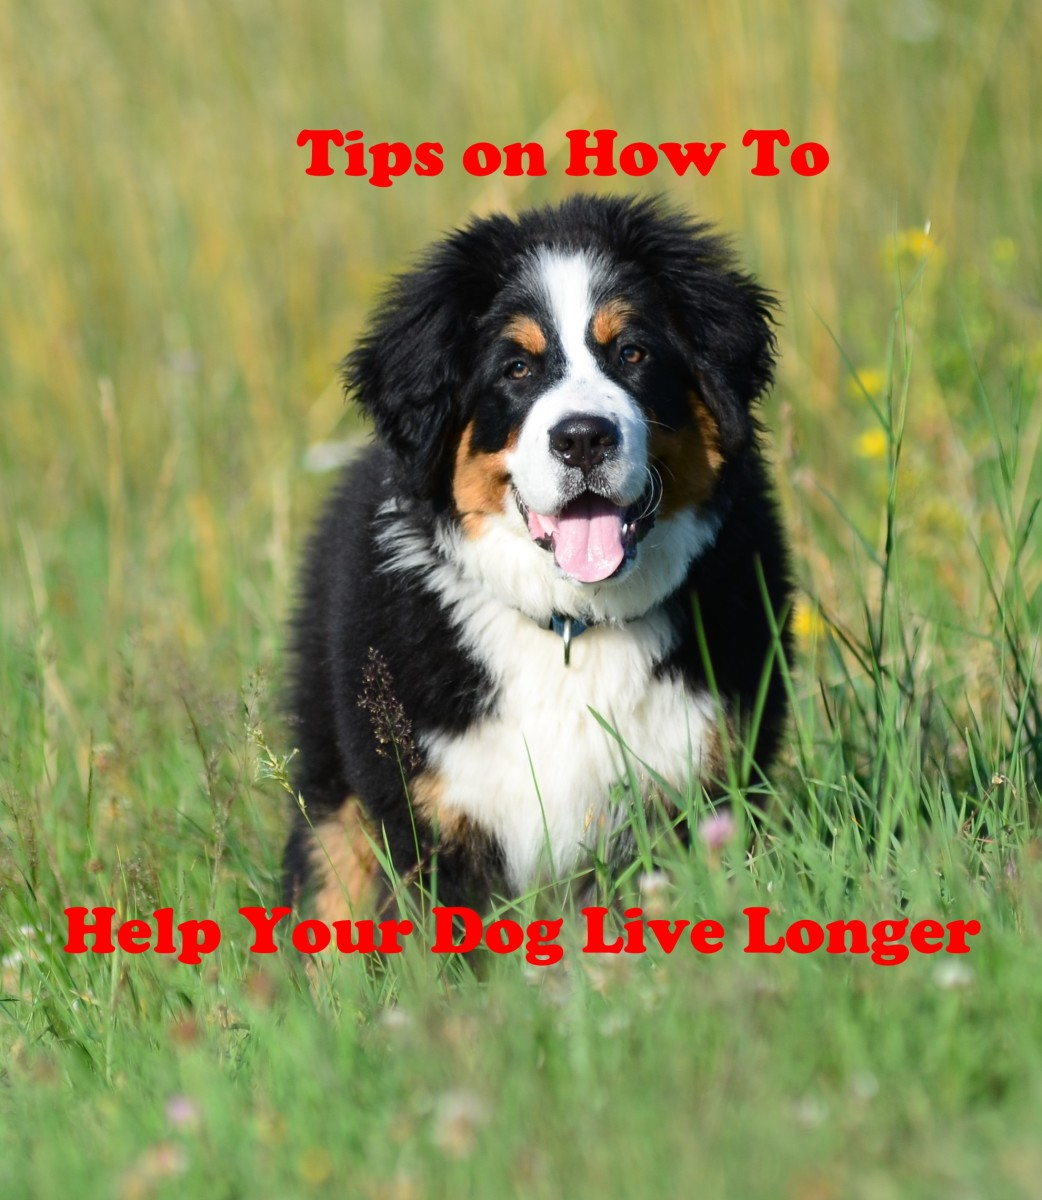 Your giant dog breed can sometimes live longer.